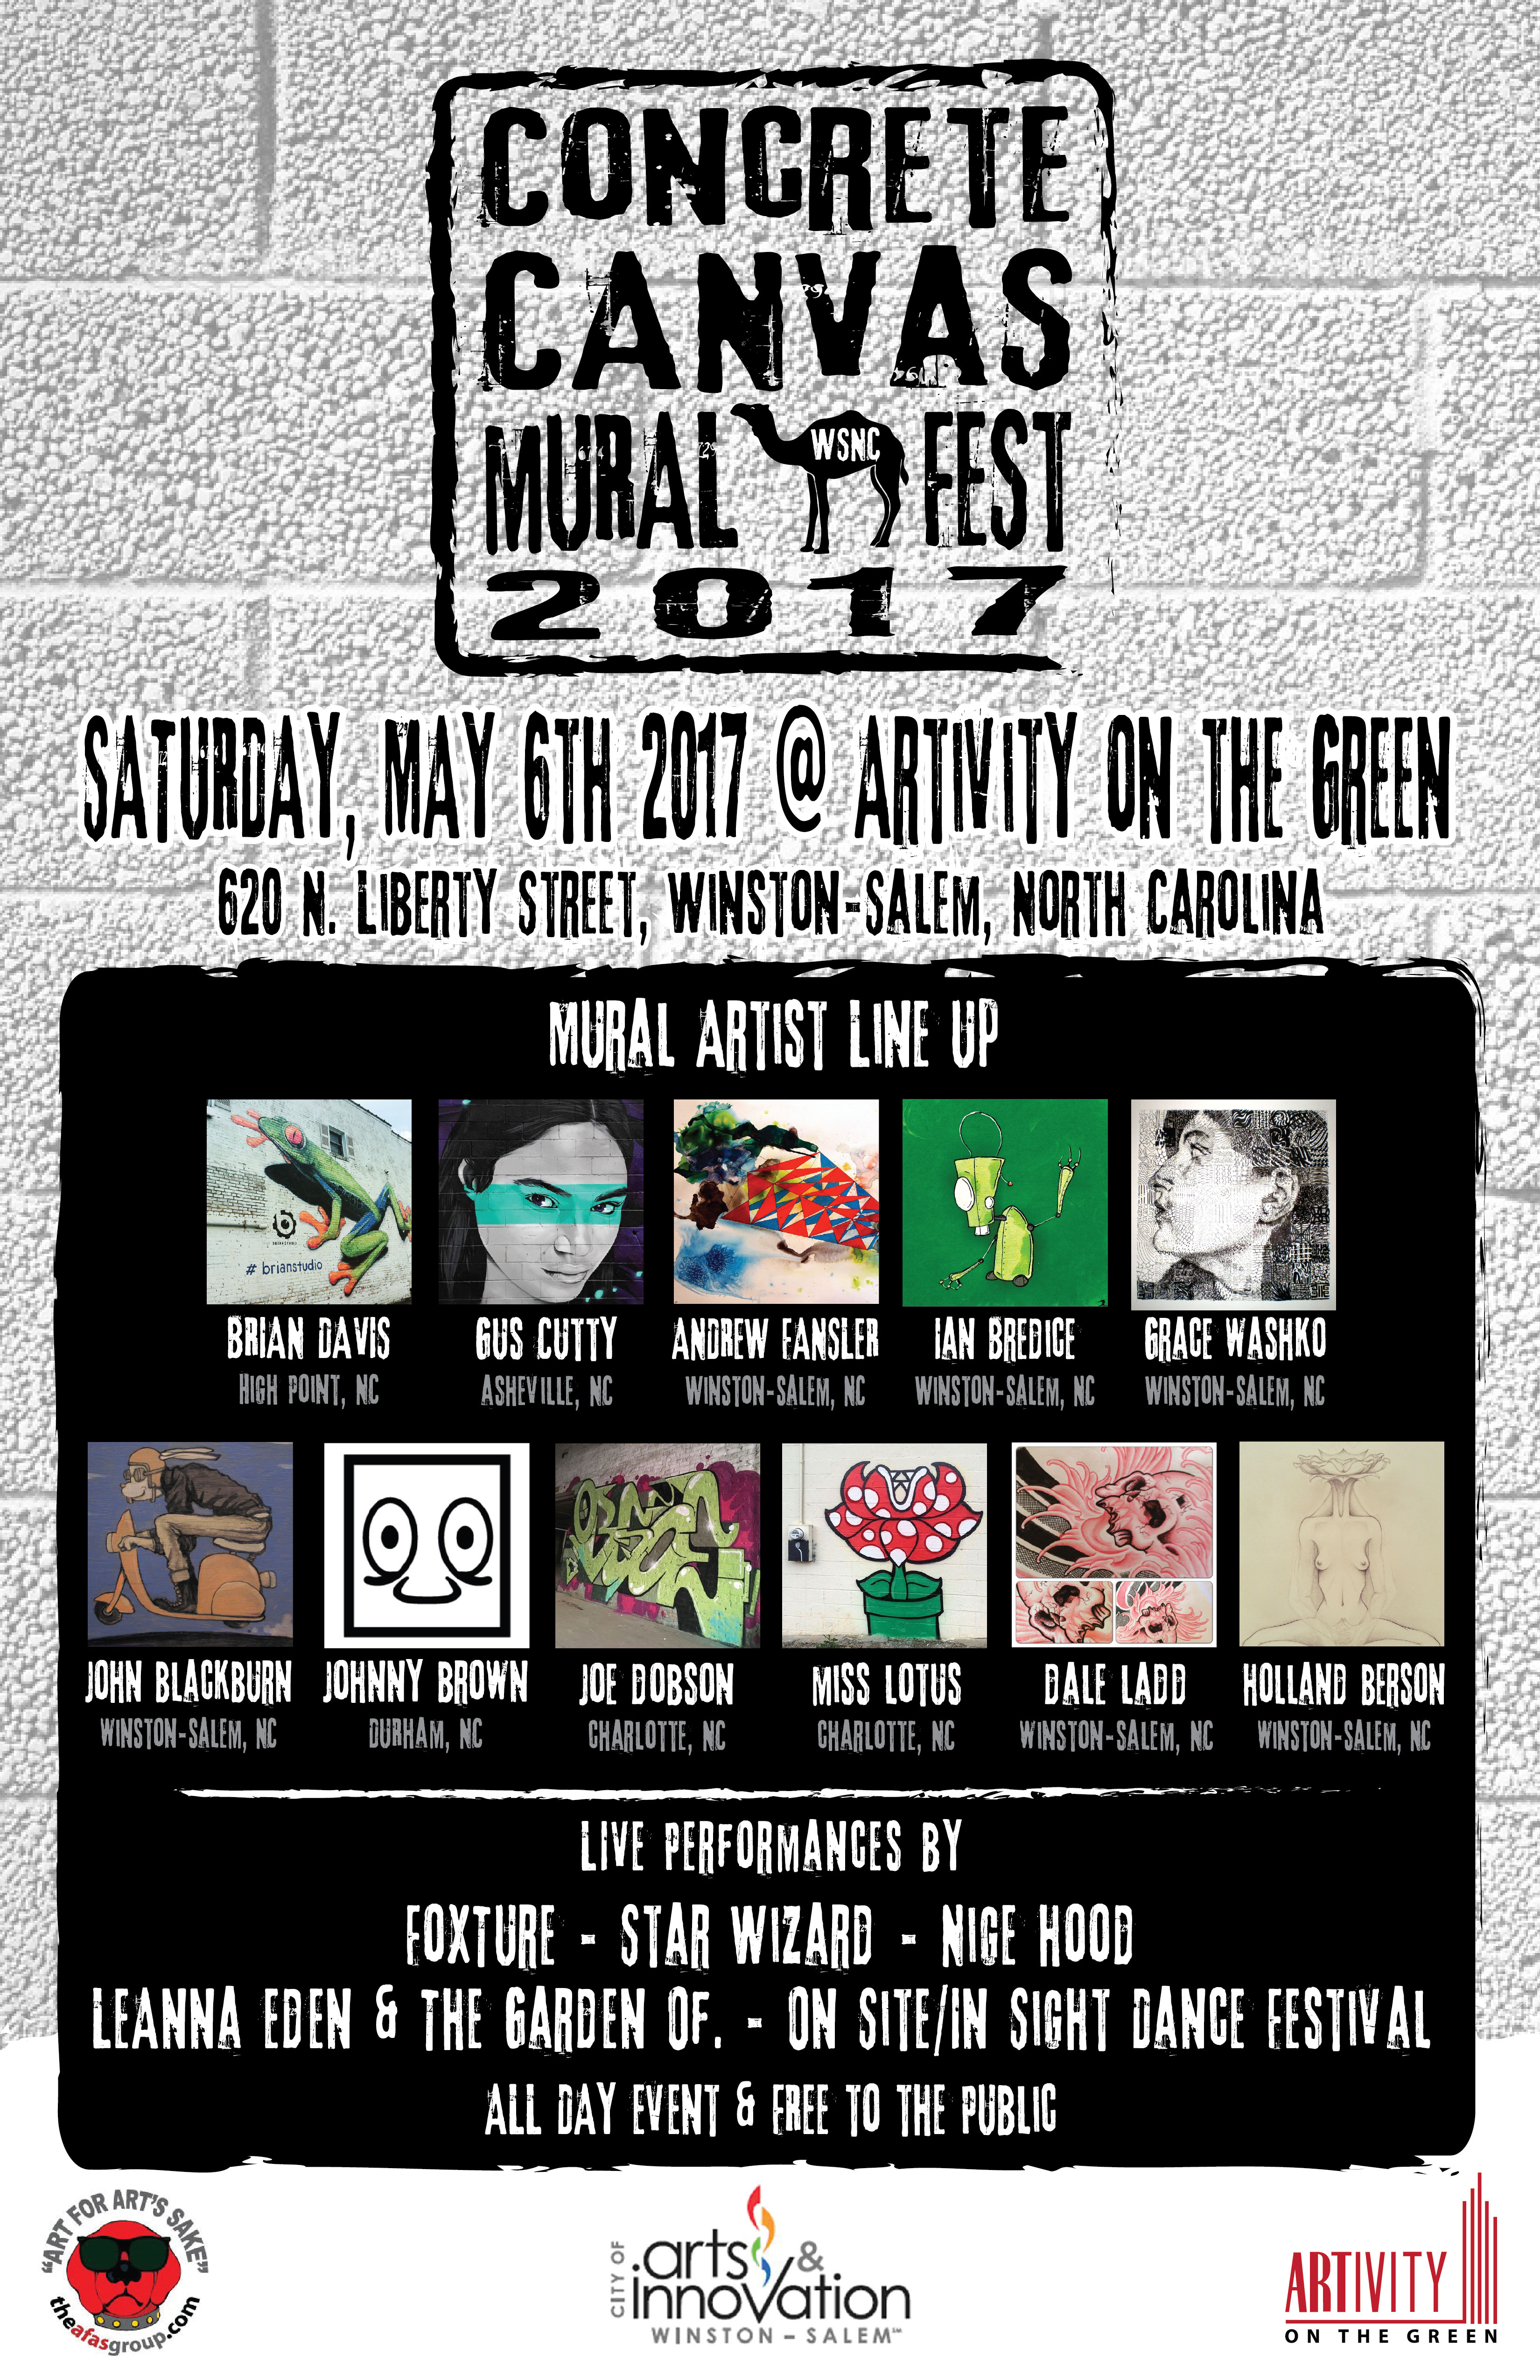 concrete canvas mural fest 2017 at artivity on the green -